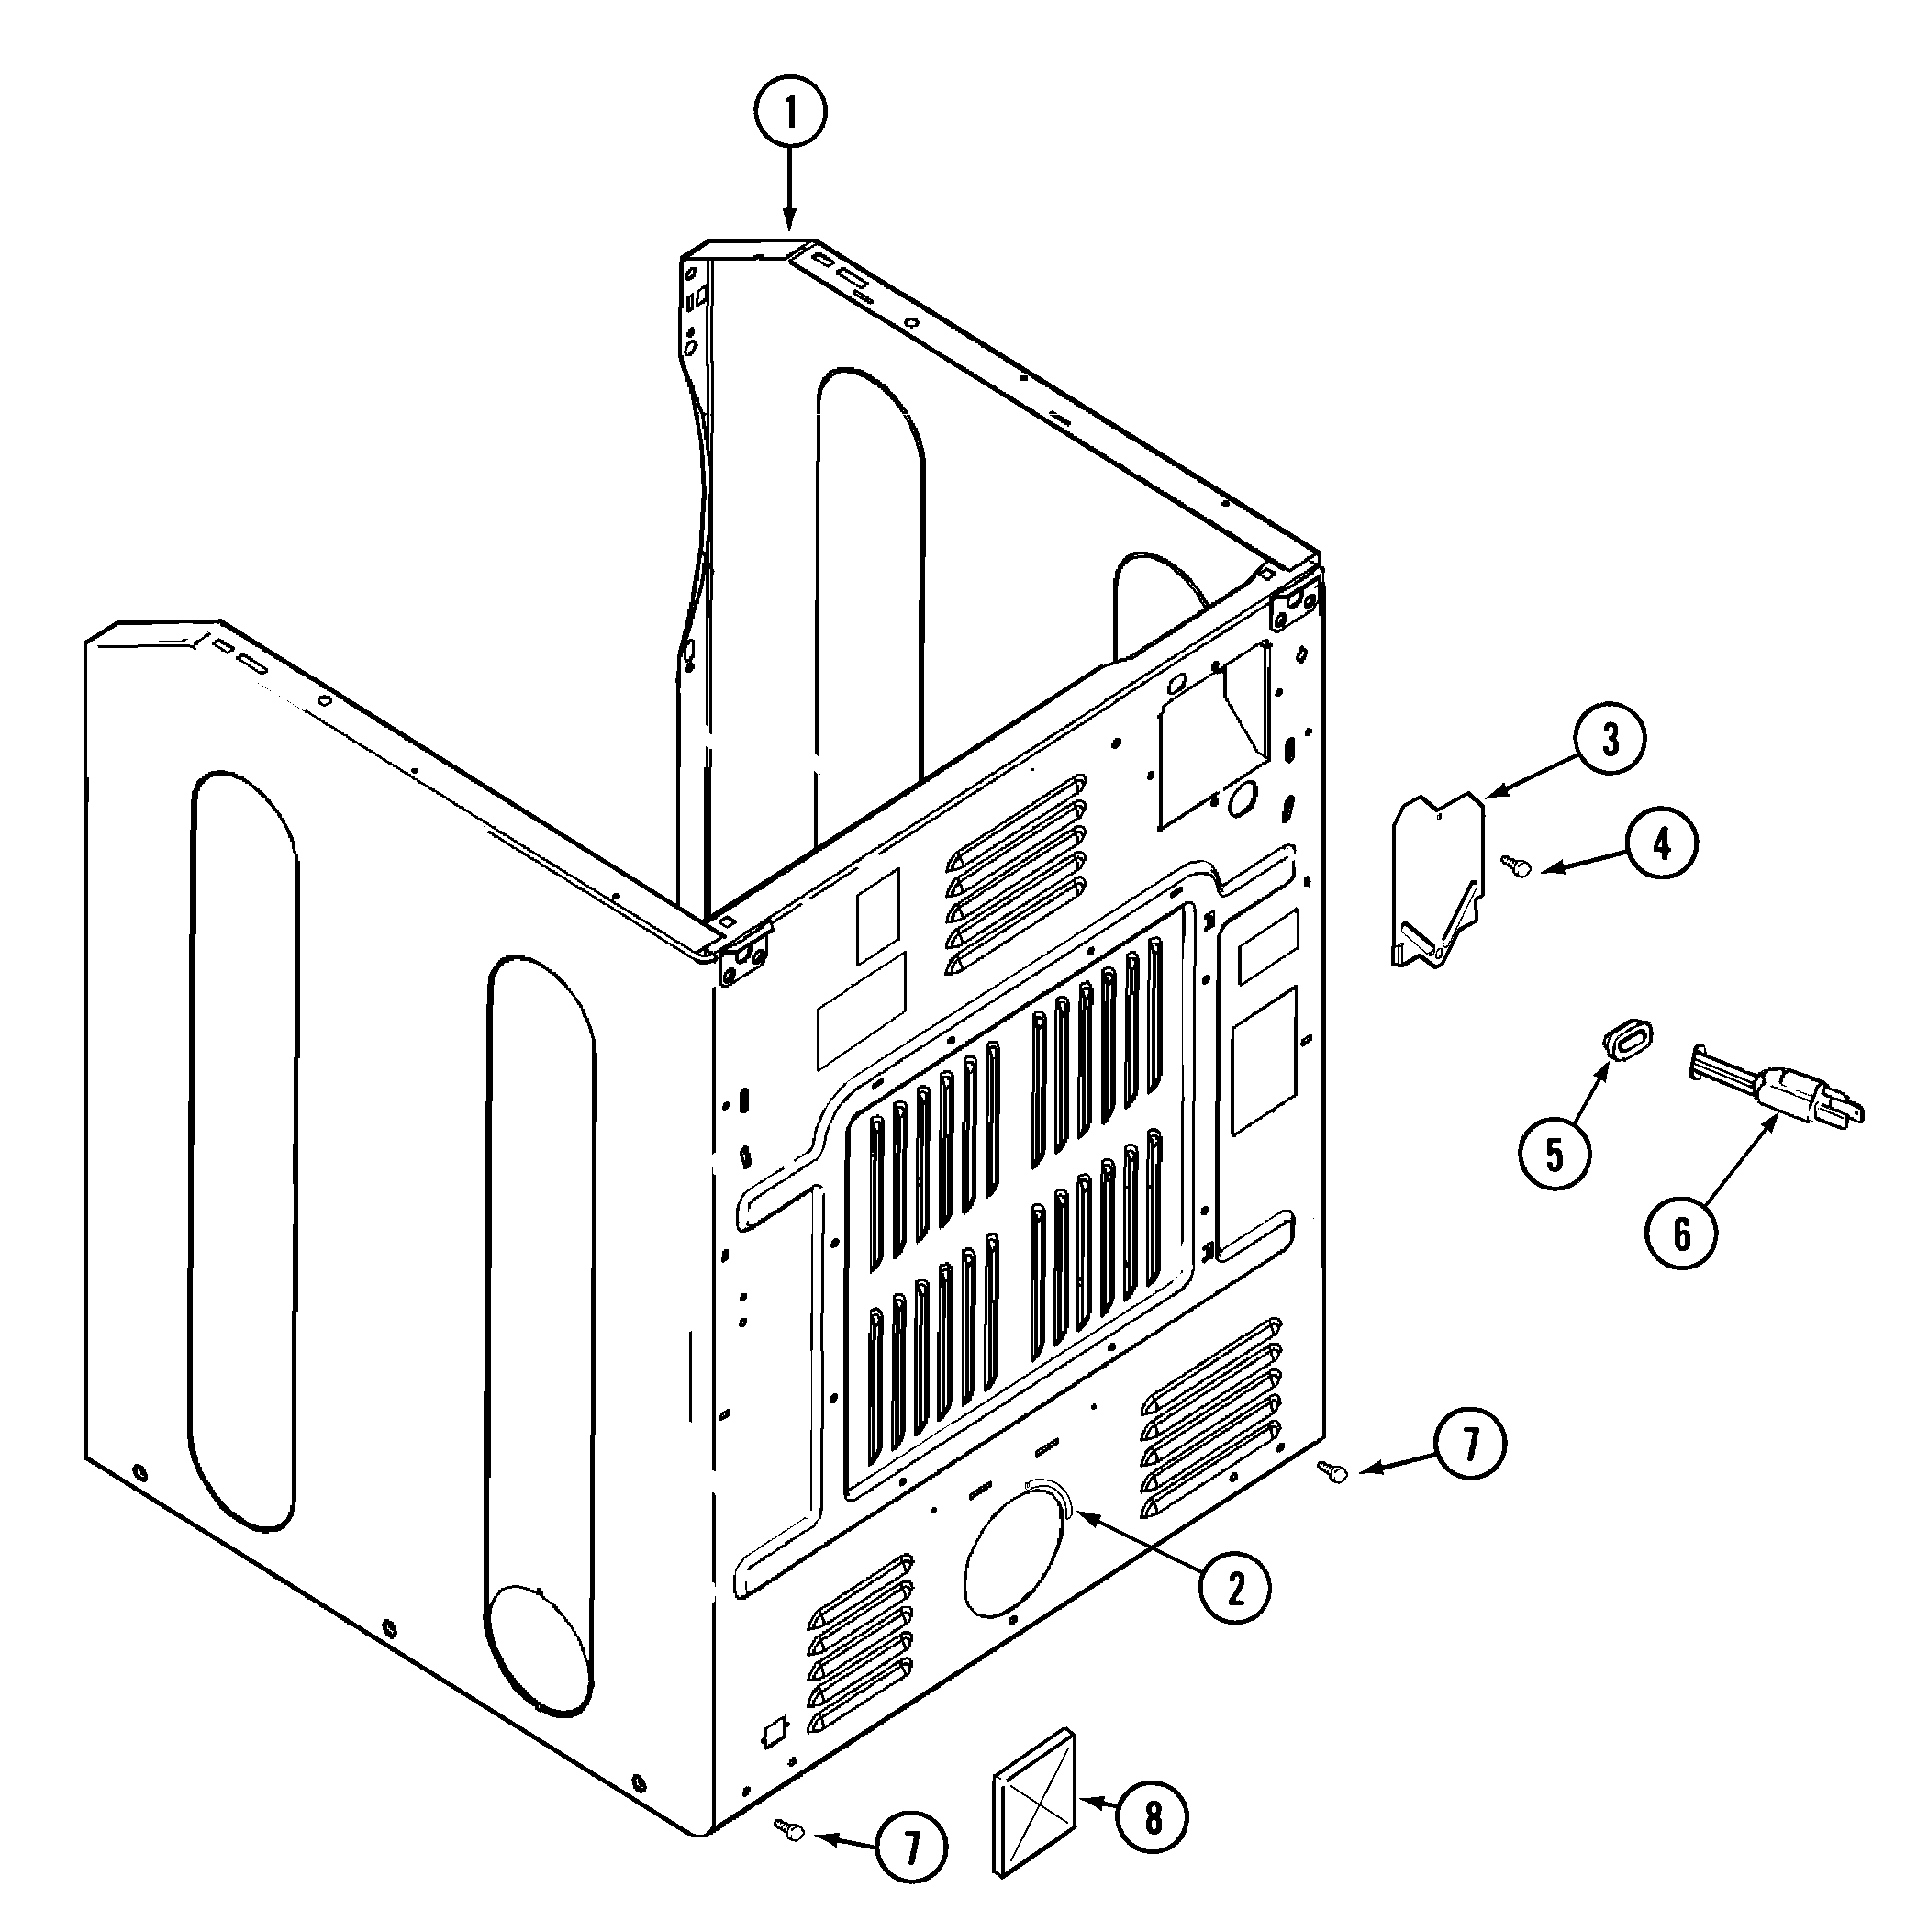 hight resolution of maytag mdg5500awq cabinet rear diagram